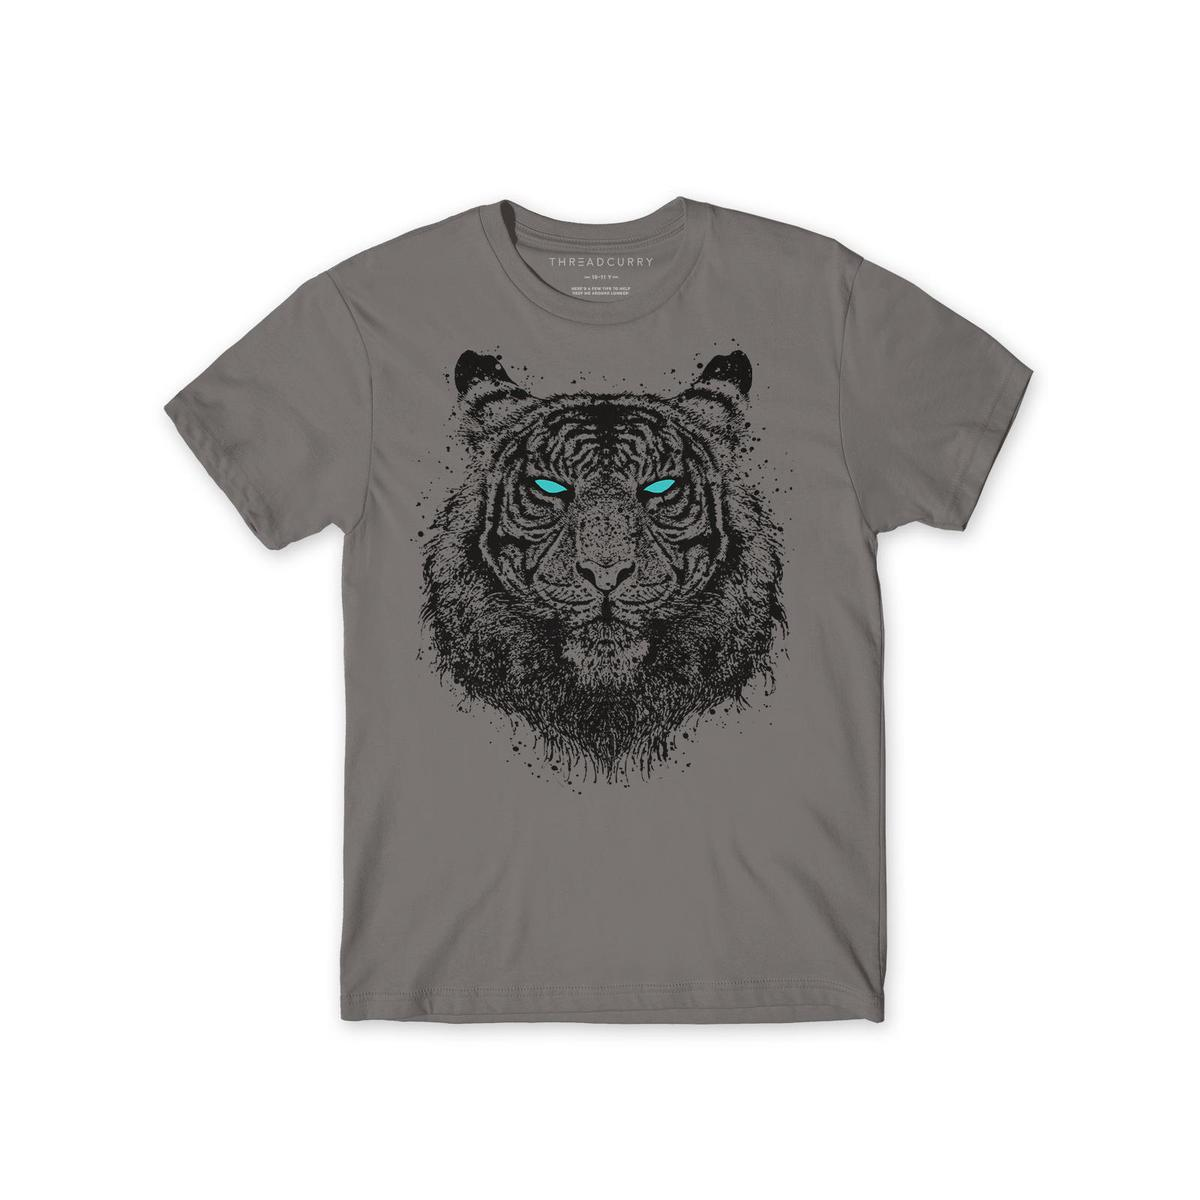 THREADCURRY - Grey Colored Pi - Richard Parker | Tiger Movie Adventure Neon Graphic Printed T-shirt for Boys